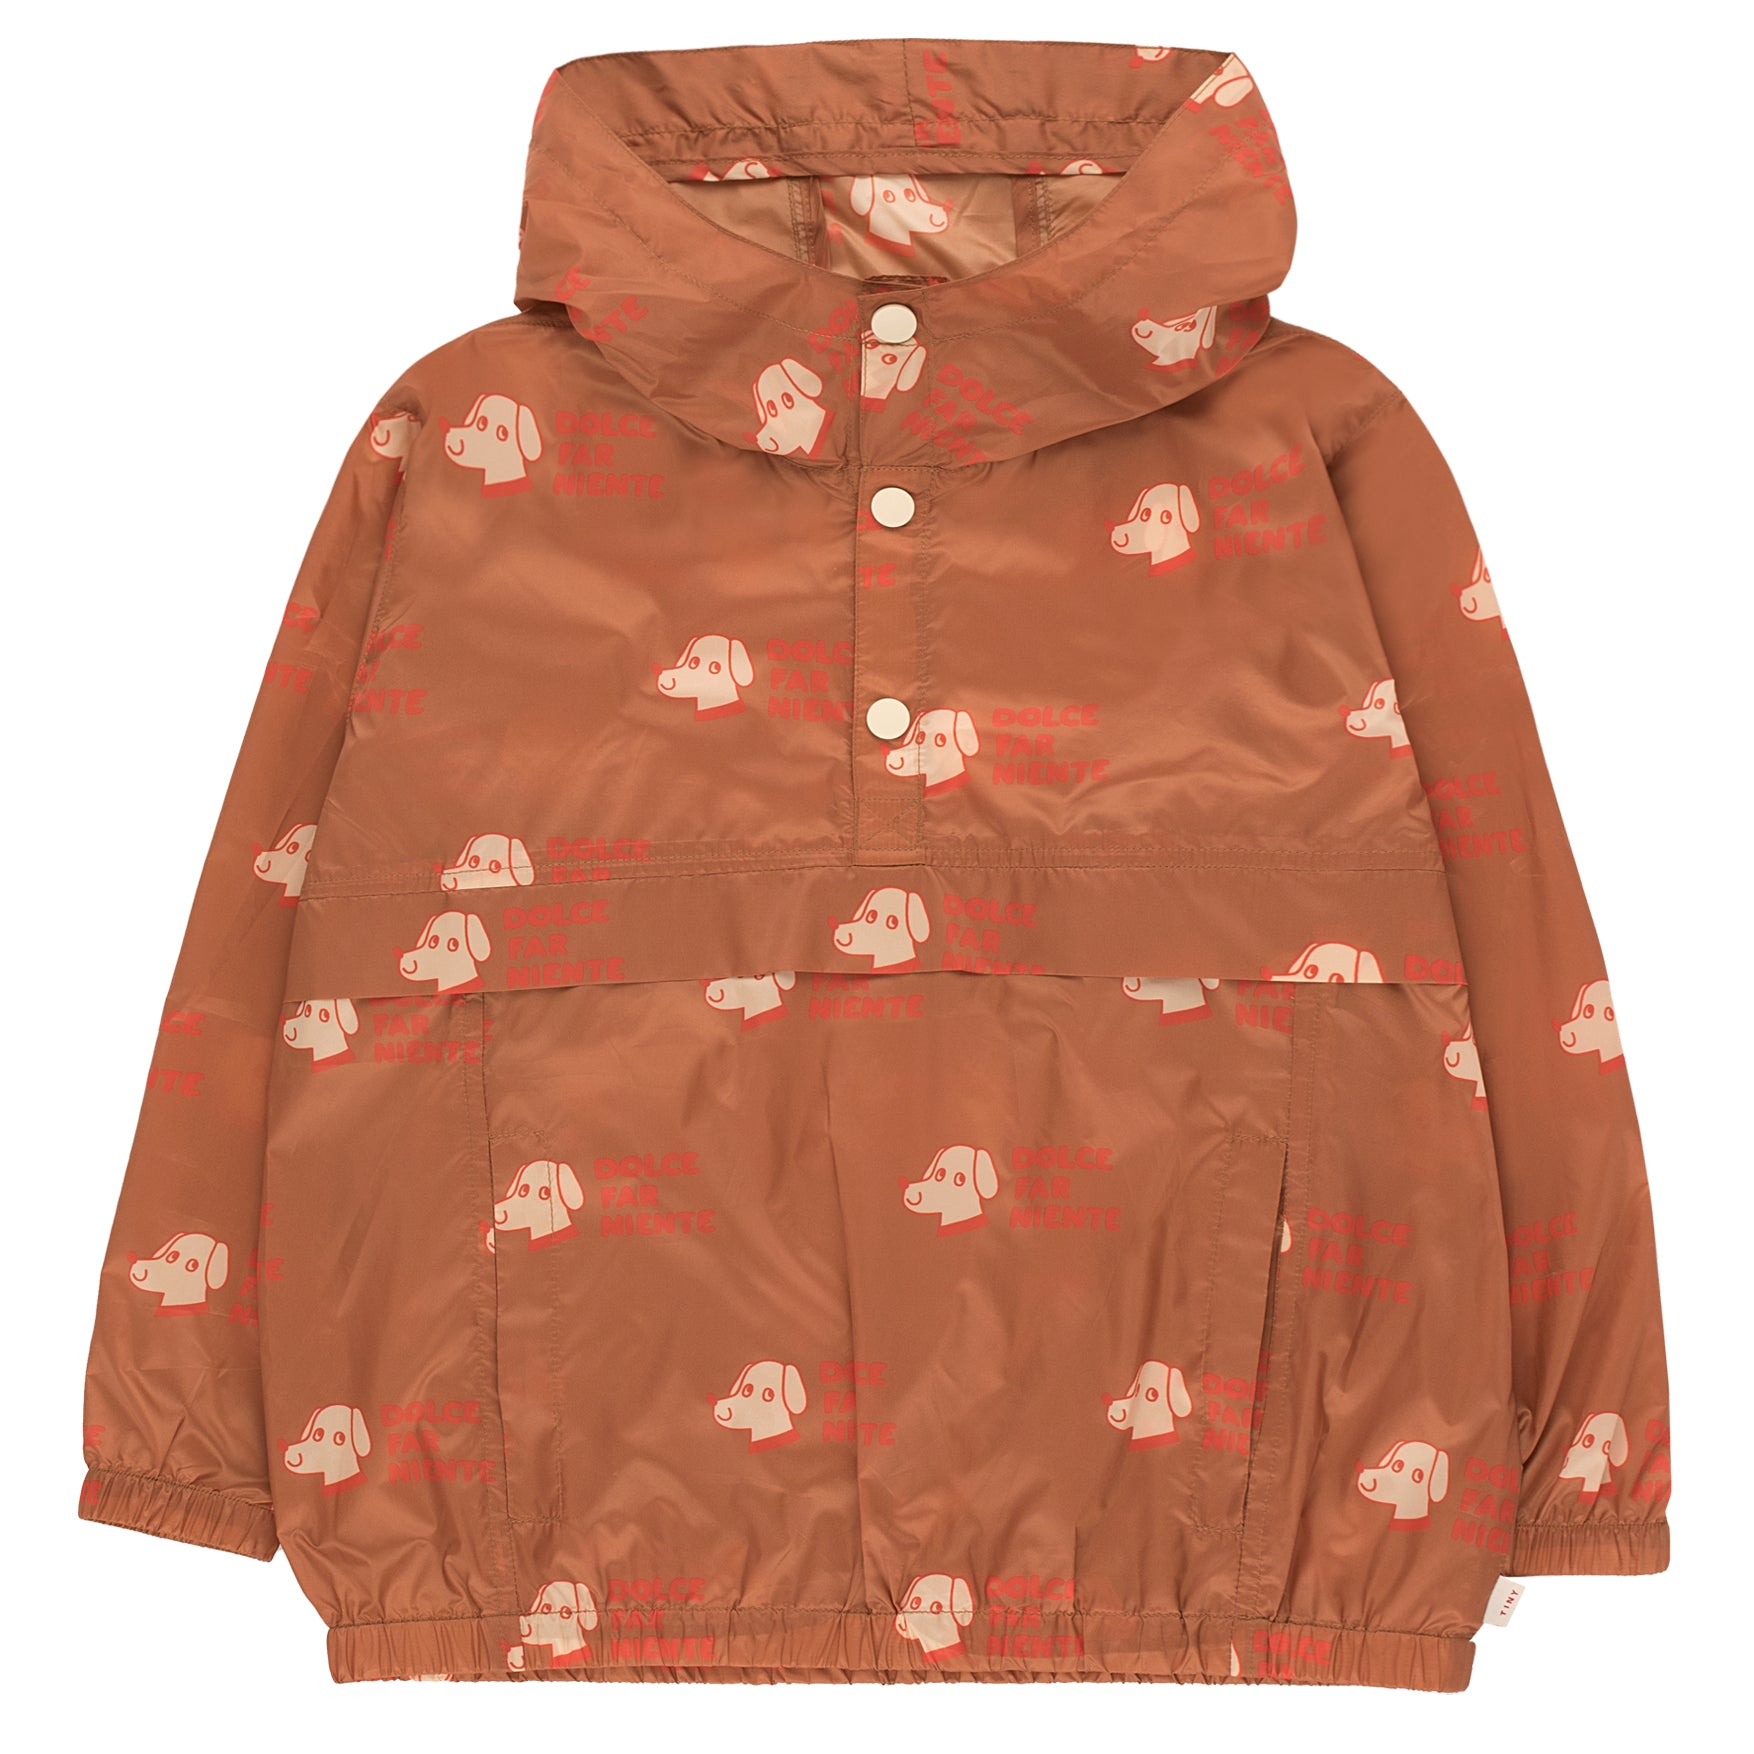 yoya, kids, boys, girls, tiny cottons, summer, lightweight, casual, graphic printed, hooded, pullover, windbreaker jacket